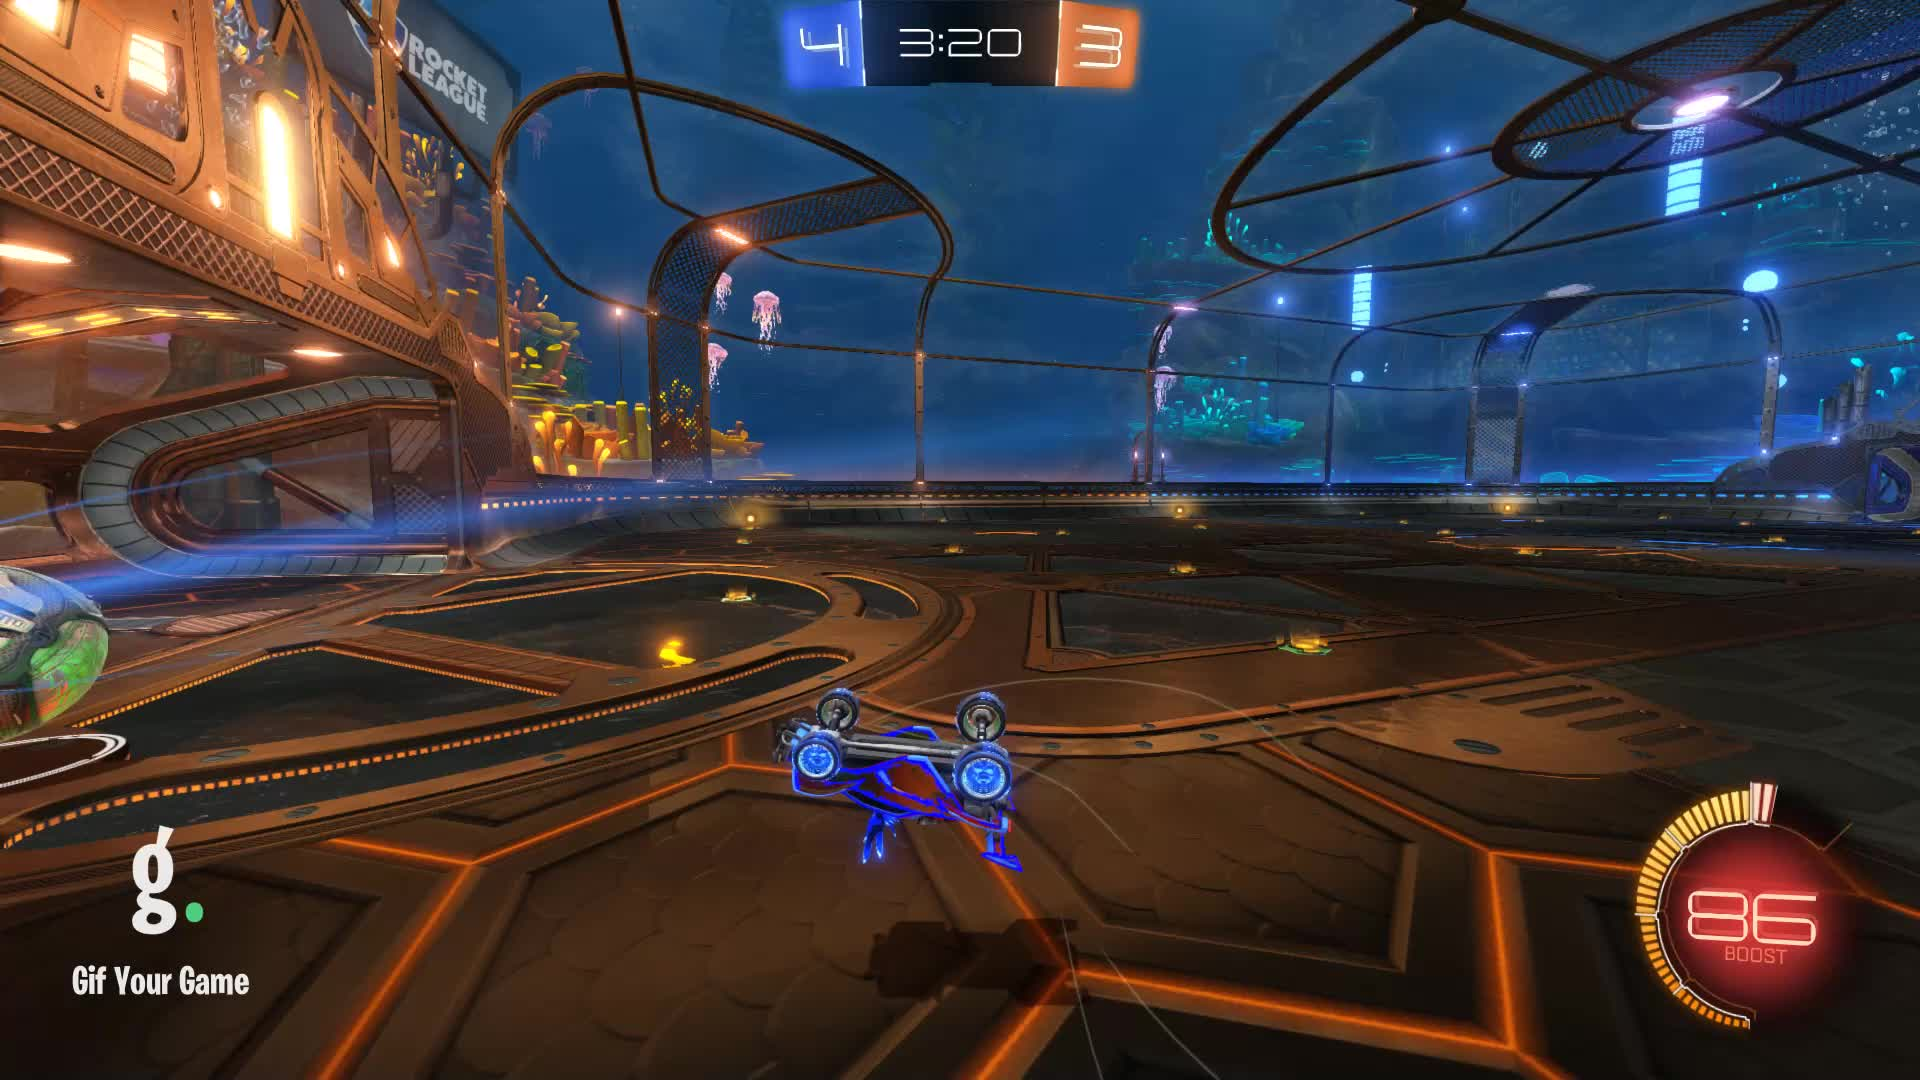 Gif Your Game, GifYourGame, Goal, Rocket League, RocketLeague, Timper [NL], Goal 8: Timper [NL] GIFs